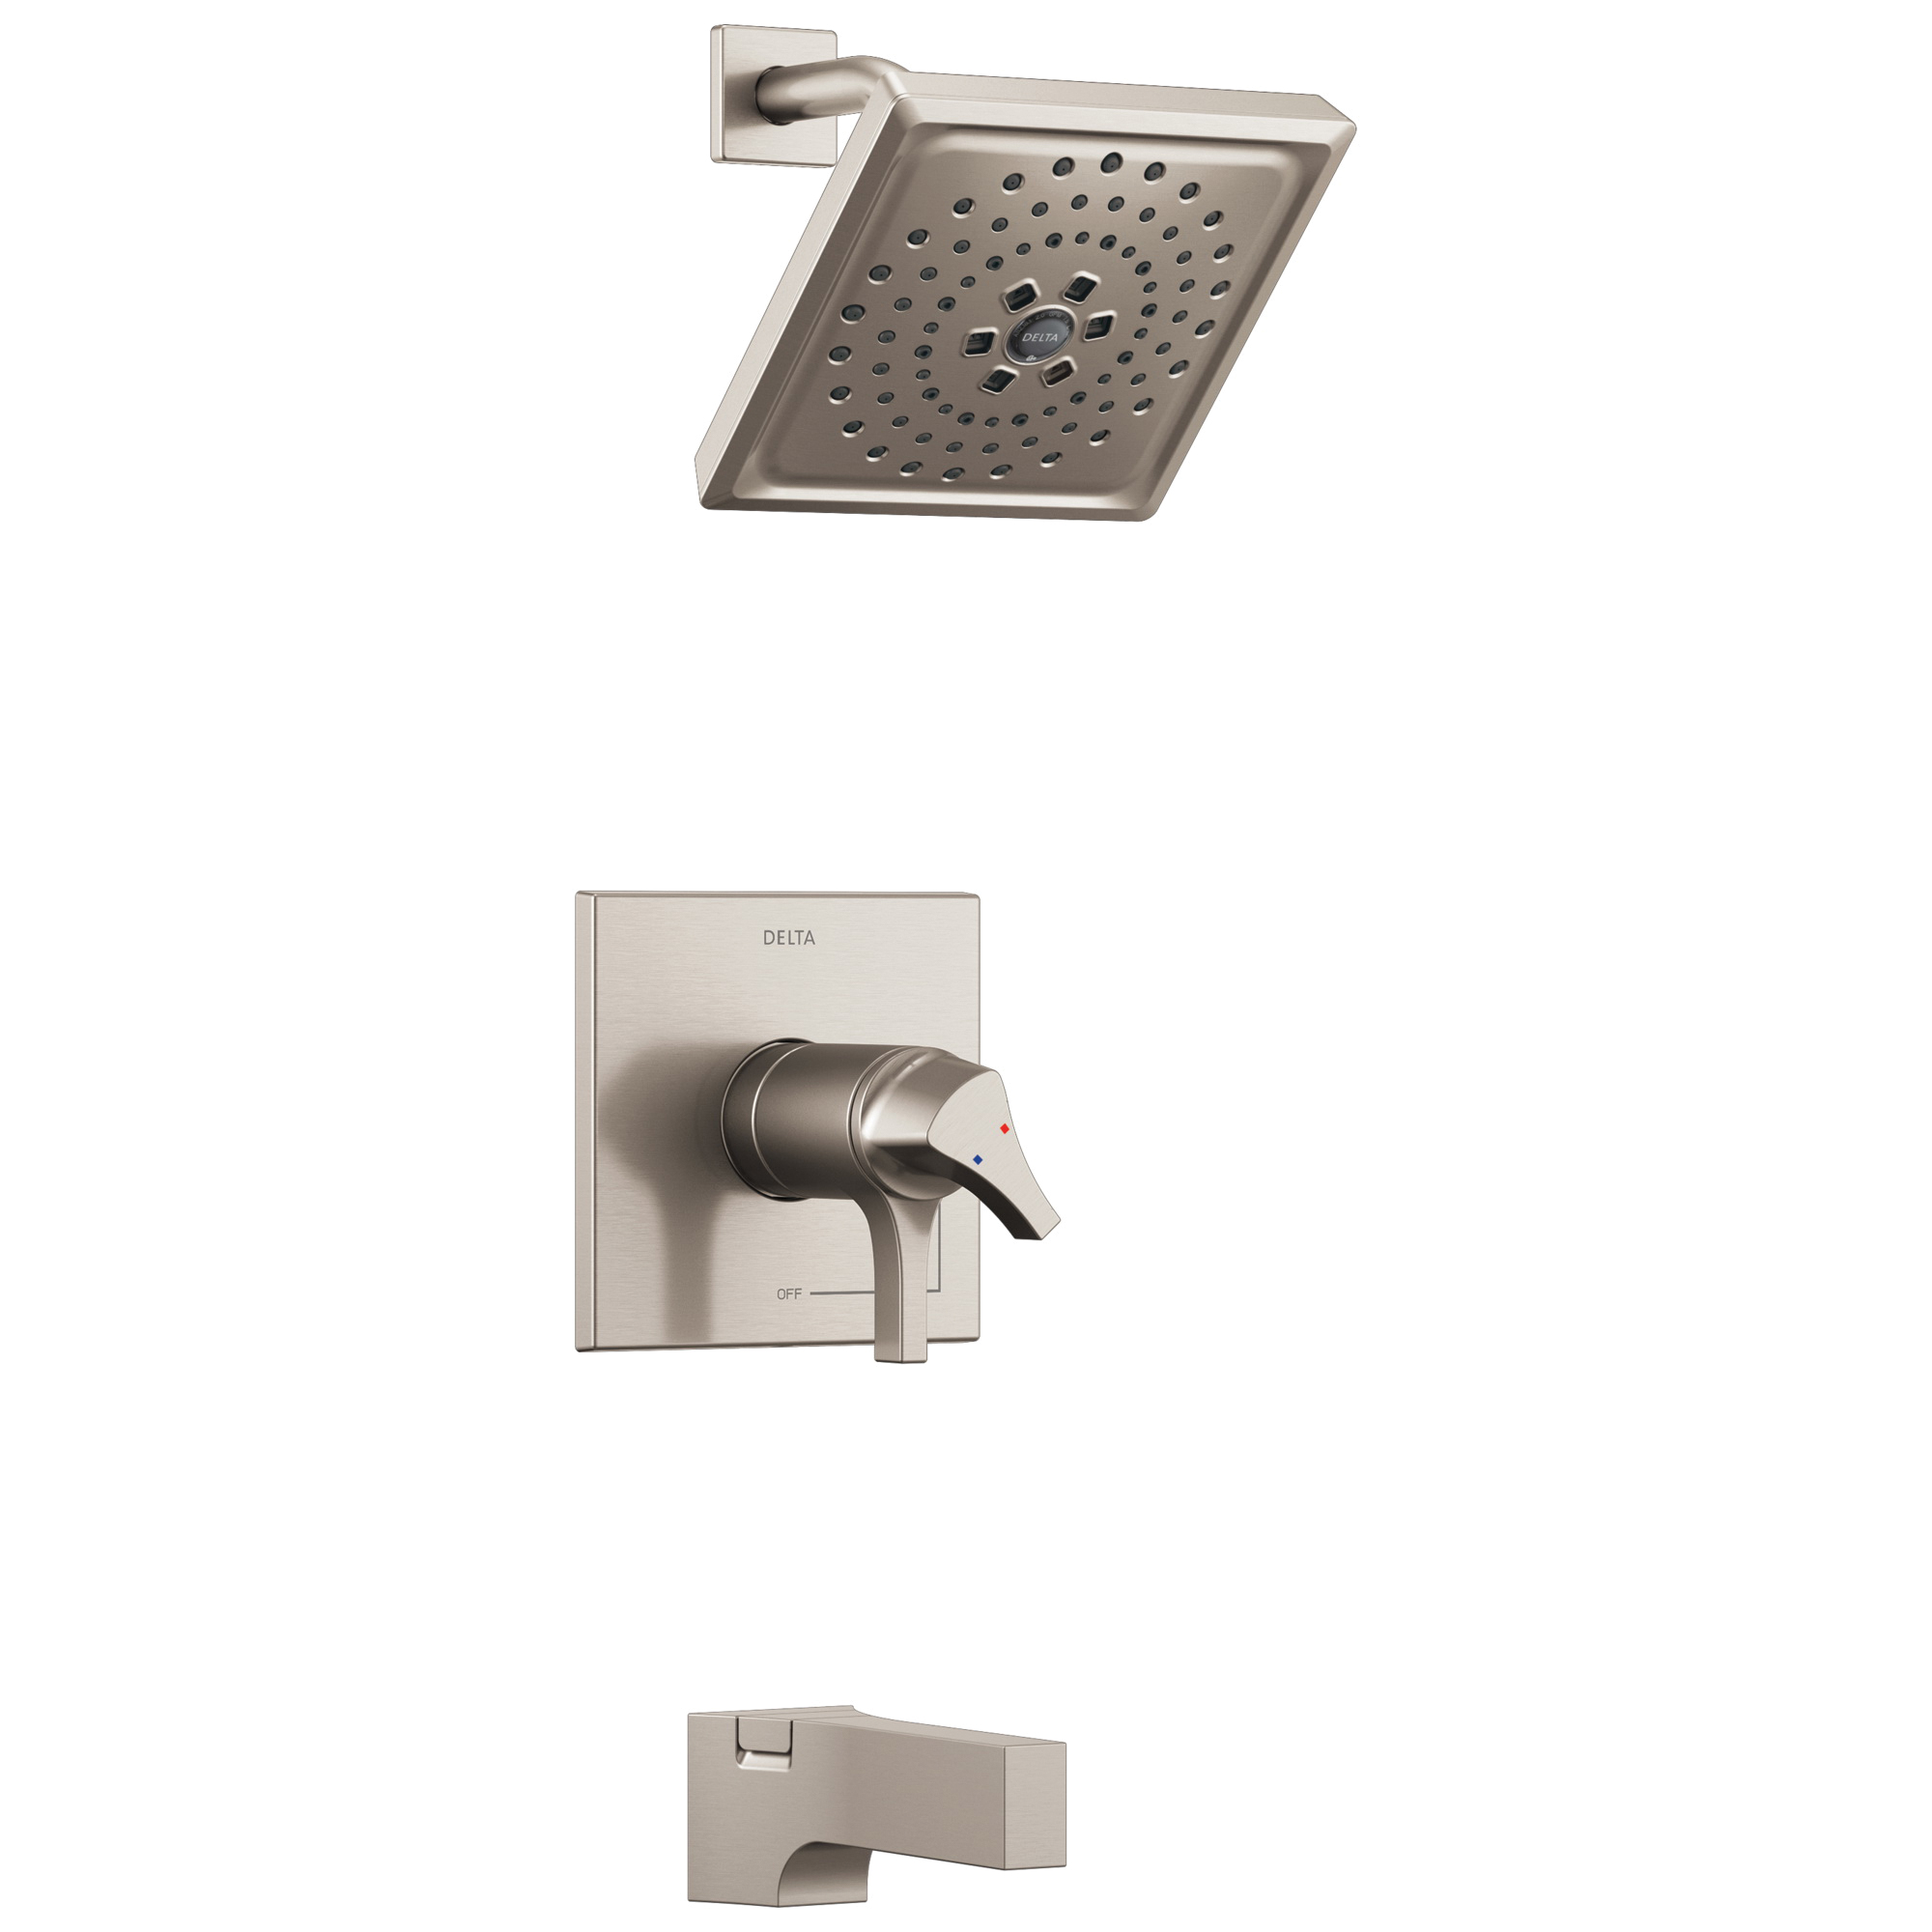 DELTA® T17T474-SS TempAssure® 17T Tub and Shower Faucet Trim, 1.75 gpm Shower, Hand Shower Yes/No: No, Brilliance® Stainless Steel